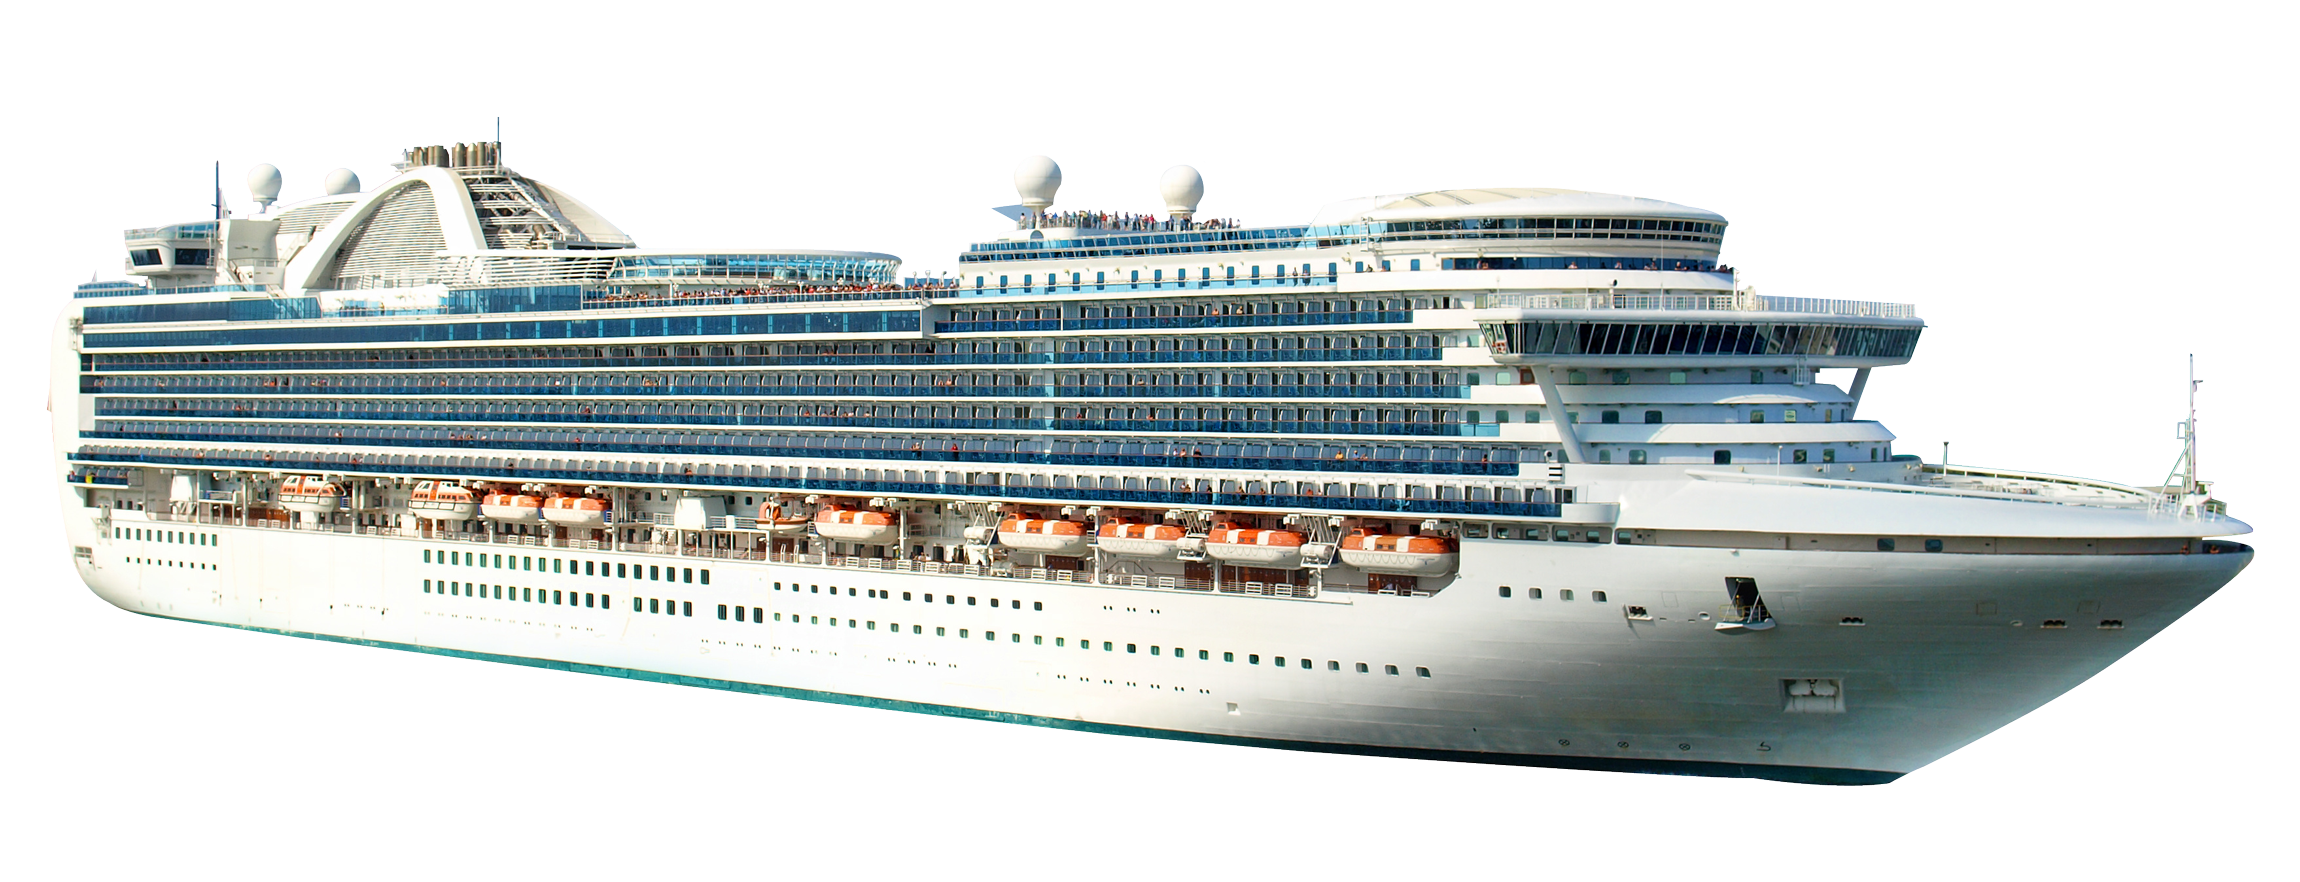 Cruise ship clip art png. Images transparent free download